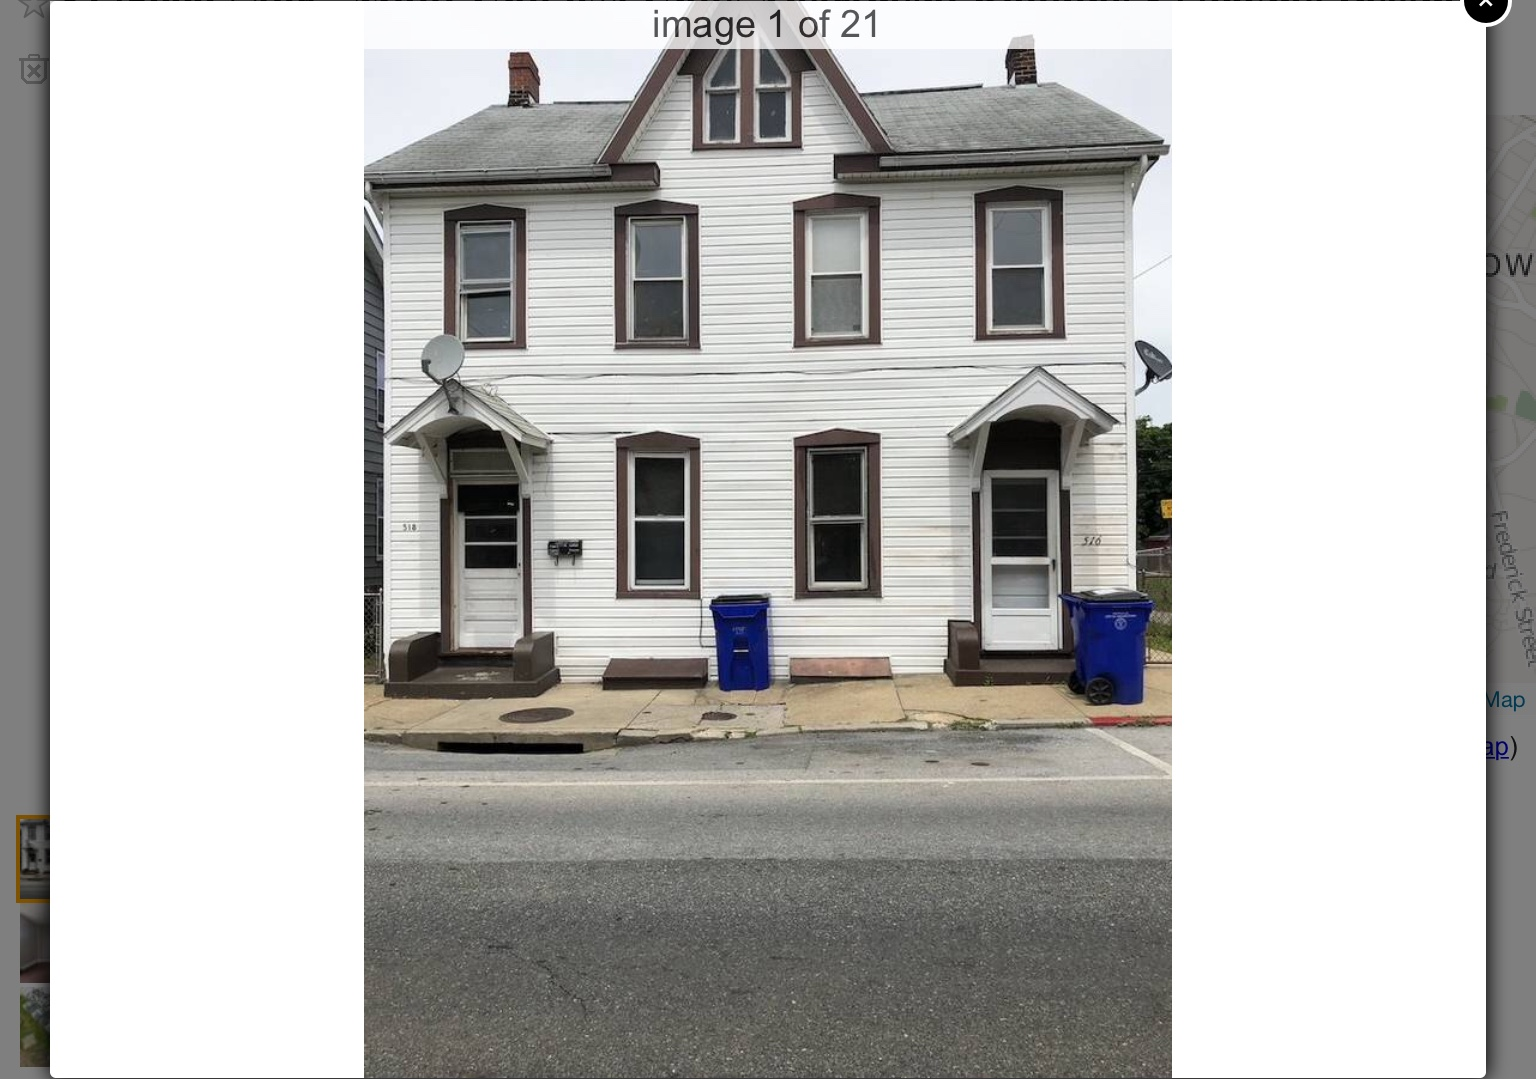 516 and 518 George Street, Hagerstown, MD